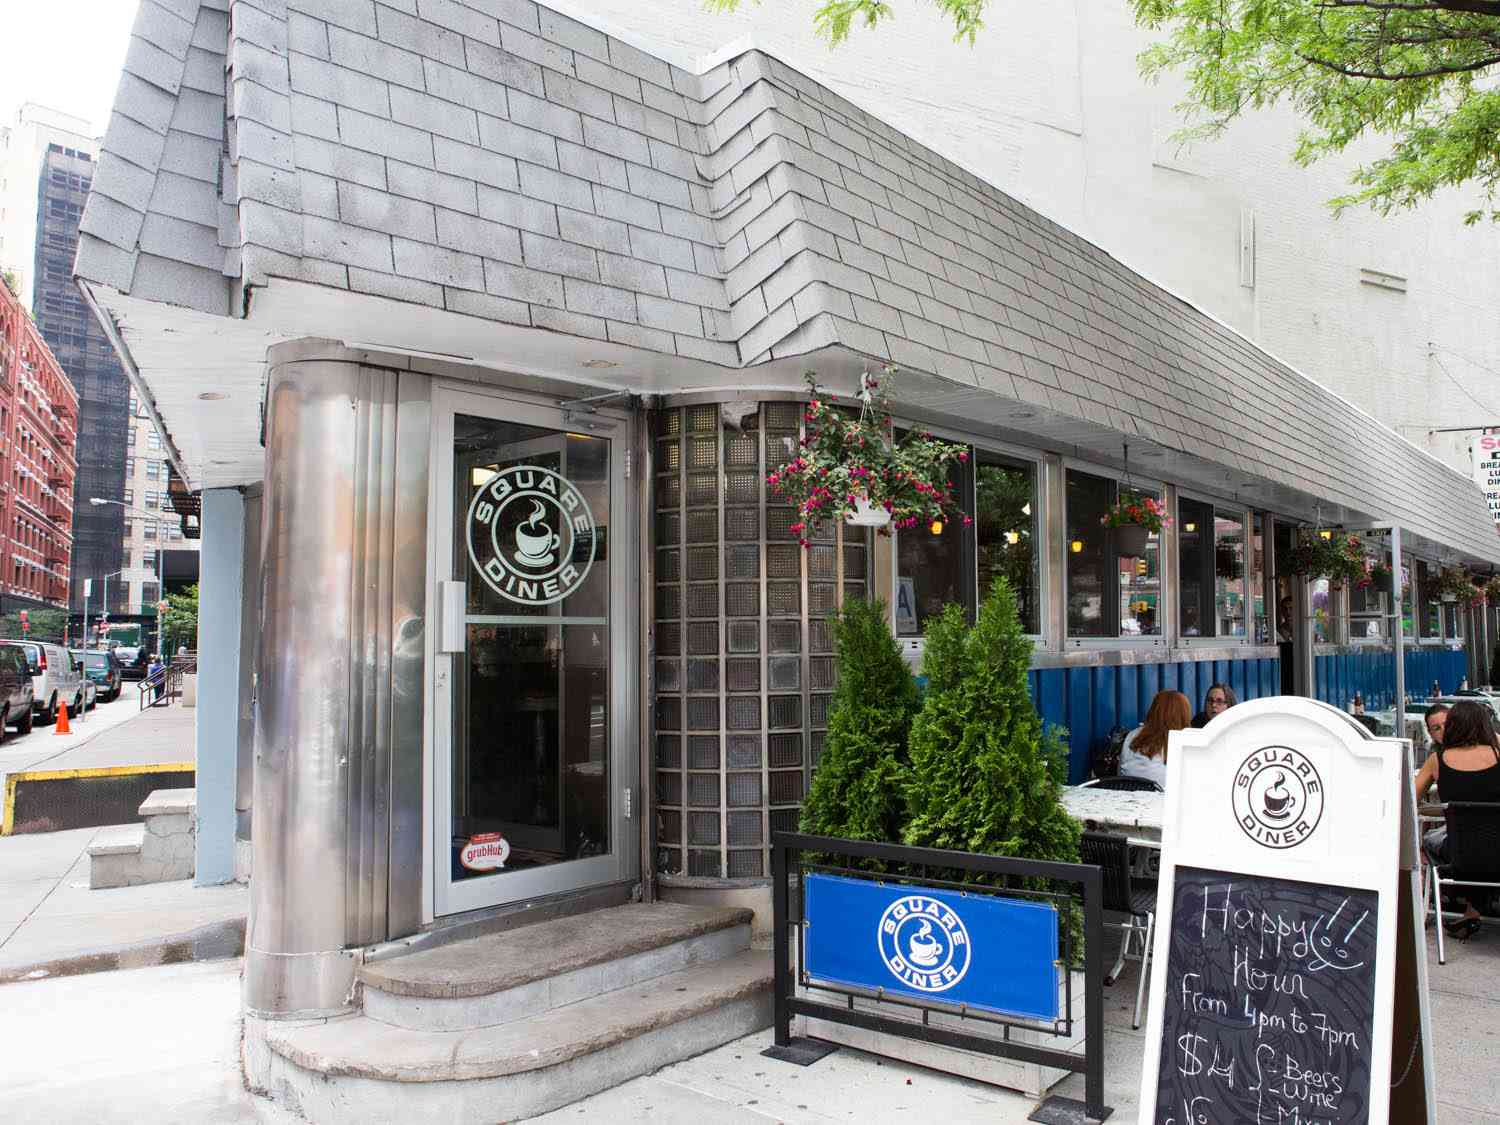 20150106-diners-exterior-square-diner-vicky-wasik-3.jpg